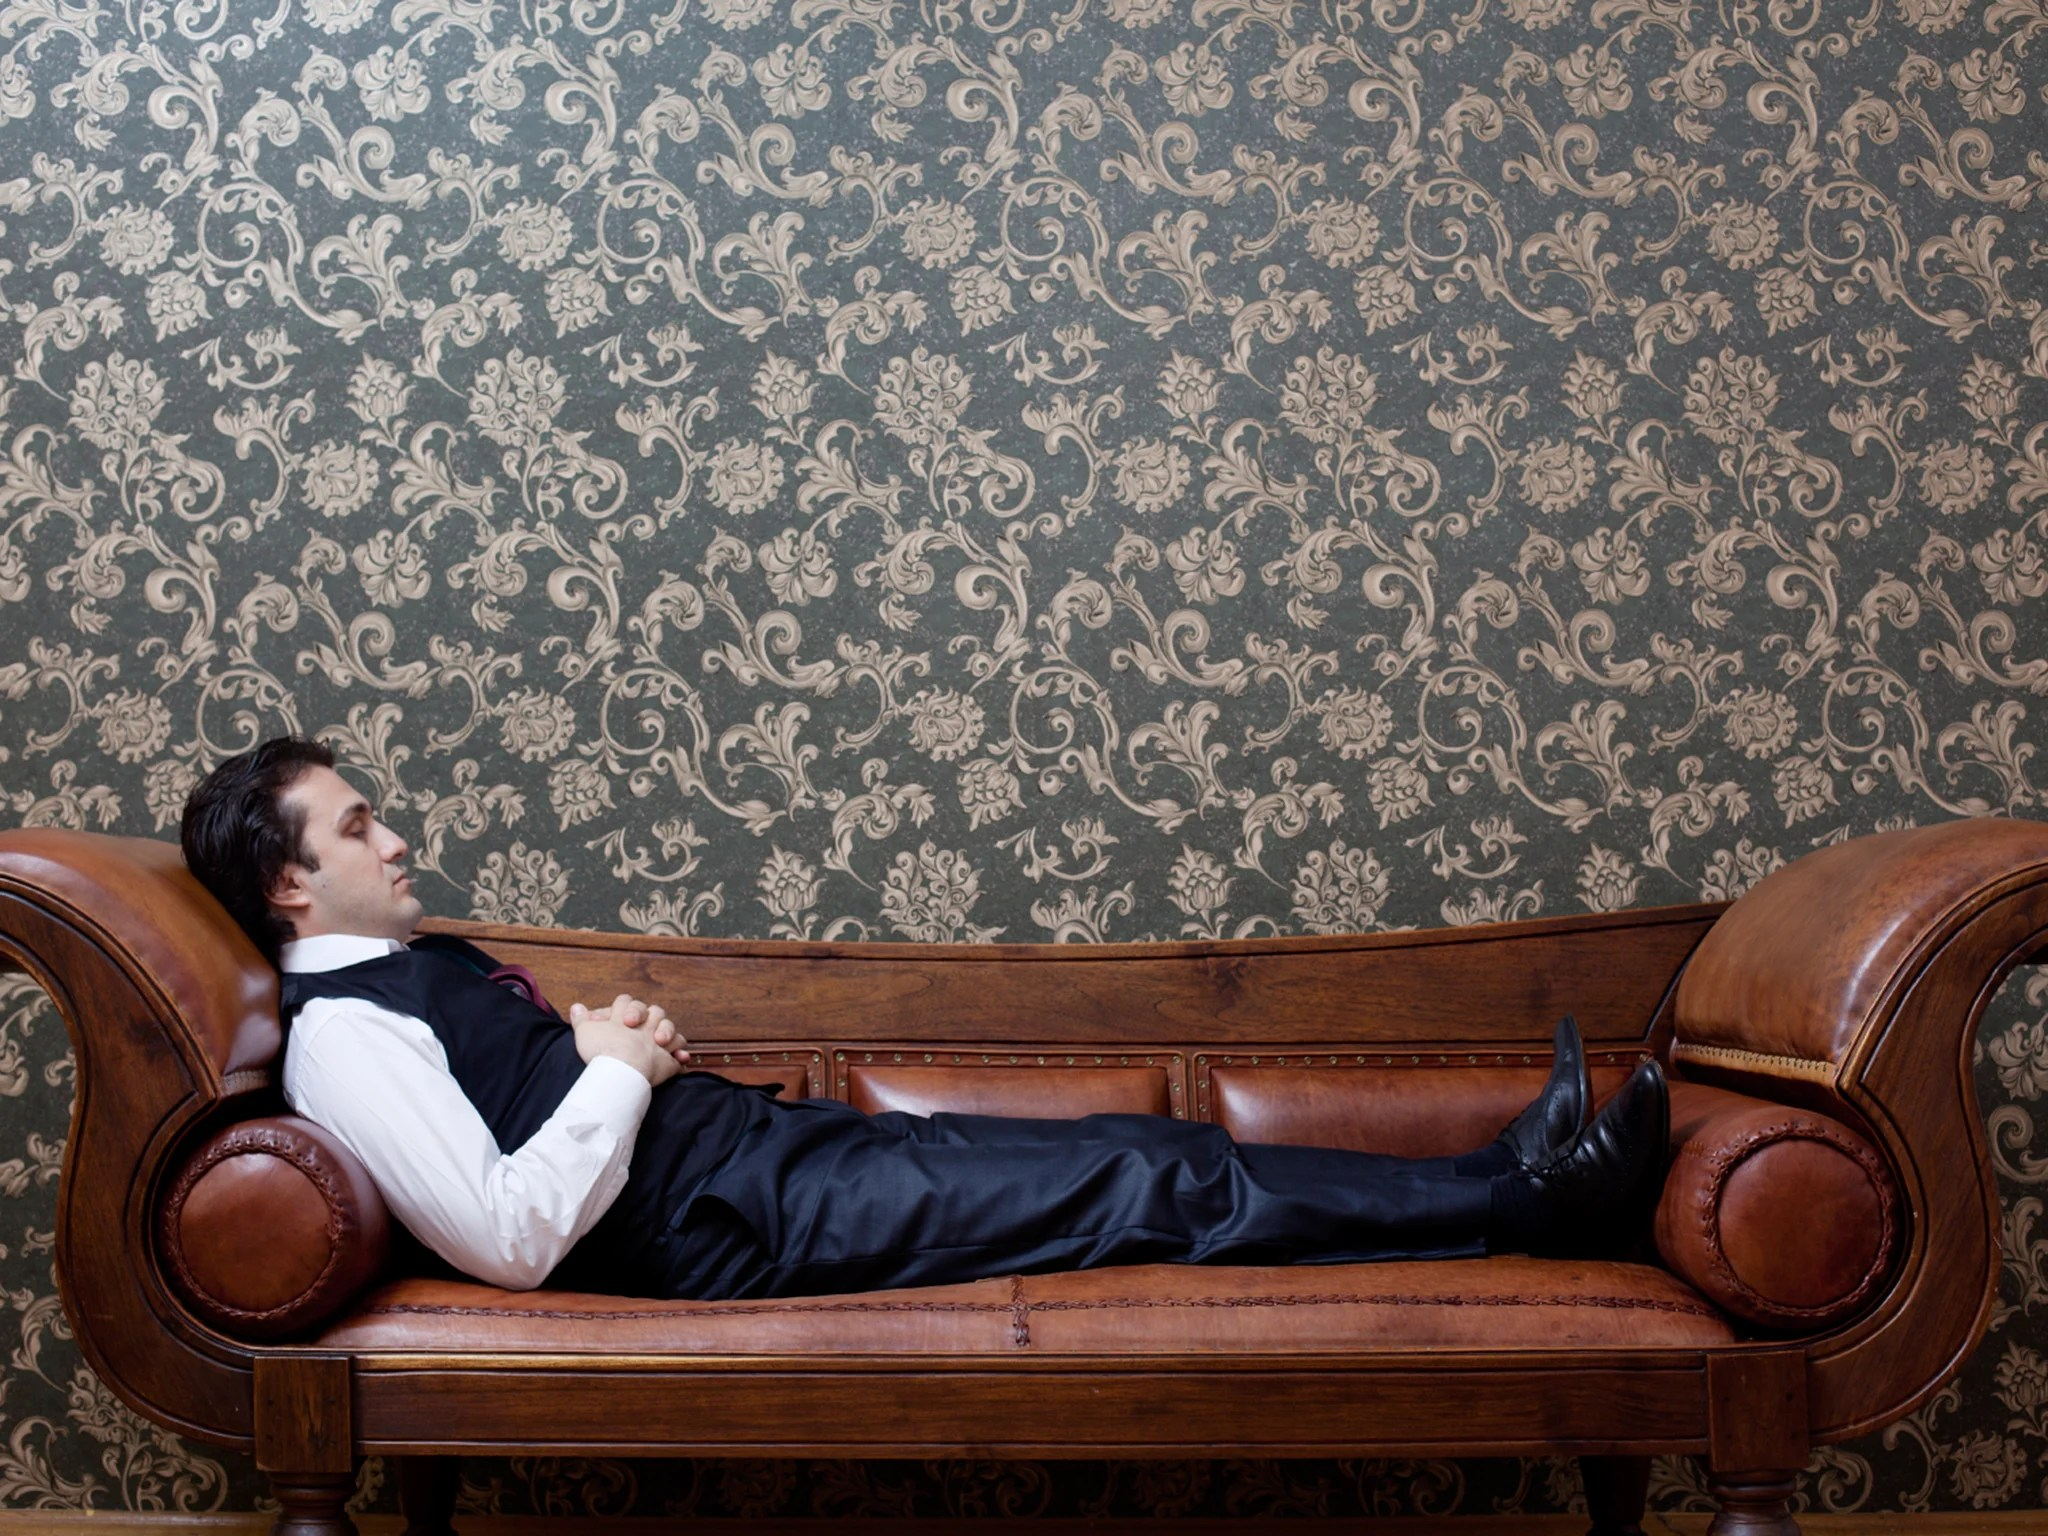 Why Do We Fall Wallpaper Why Do People Lie On A Couch When They See A Psychoanalyst